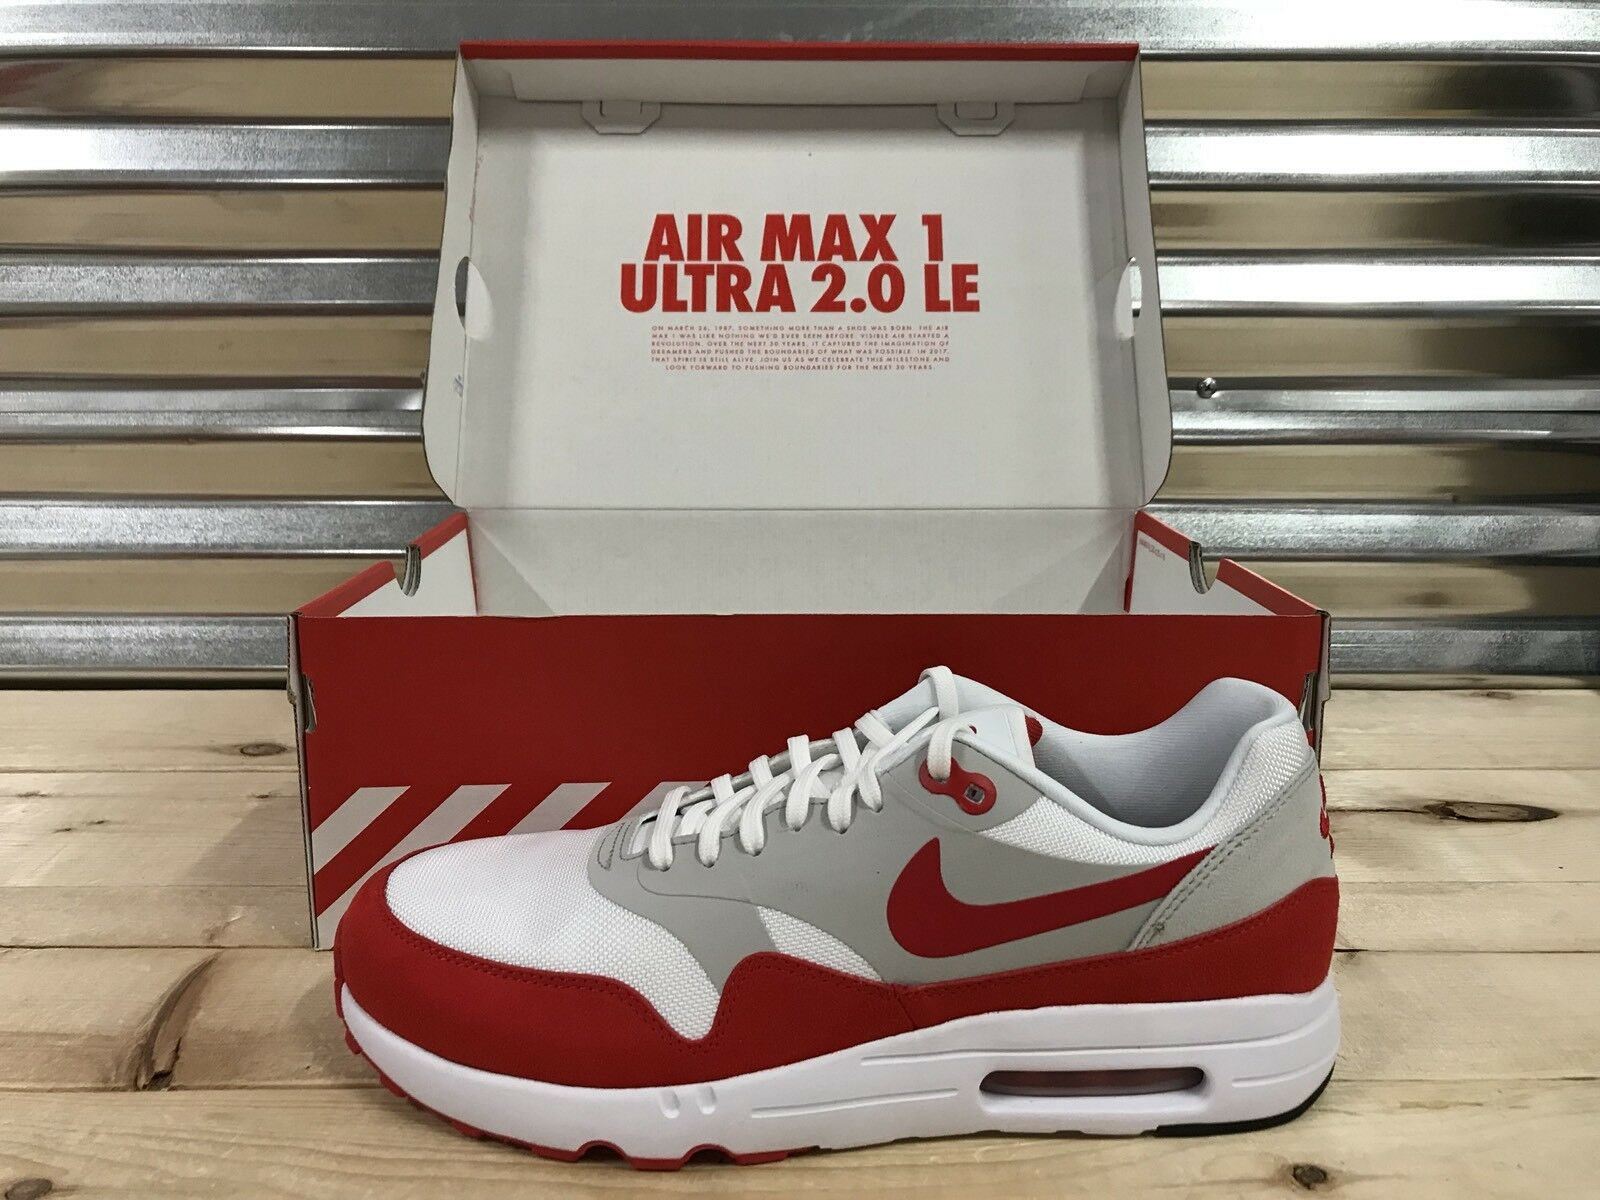 finest selection d2a04 34e66 Nike Air Max 1 Ultra 2.0 LE Air Max Day 3.26 Shoes White Red SZ ( 908091-100  )